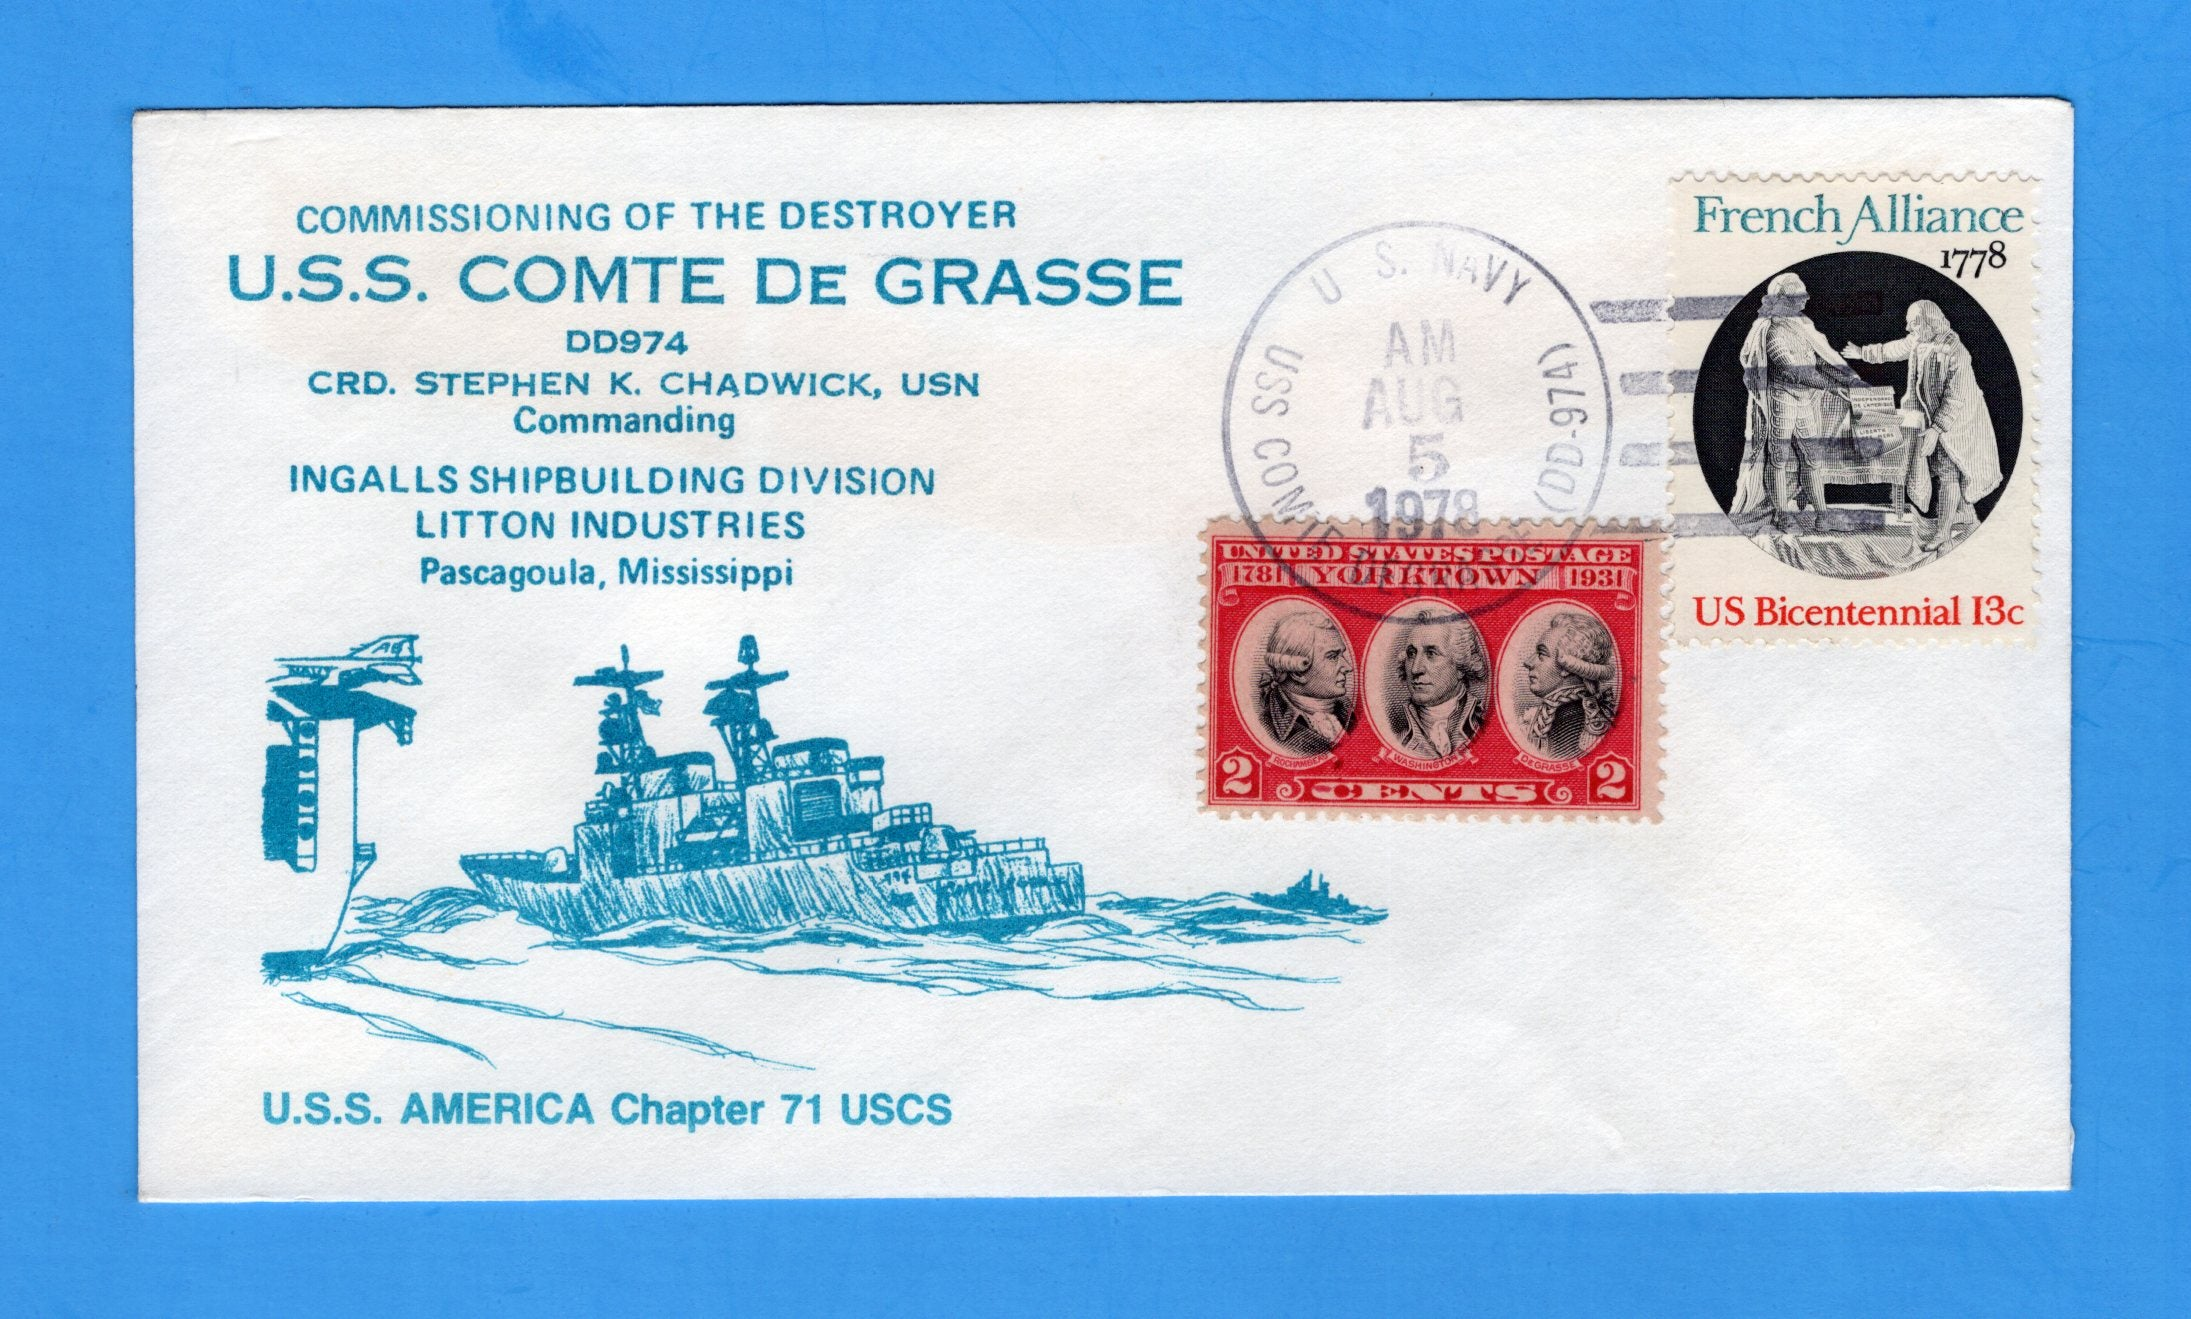 USS Comte De Grasse DD-974 Commissioned August 5, 1978